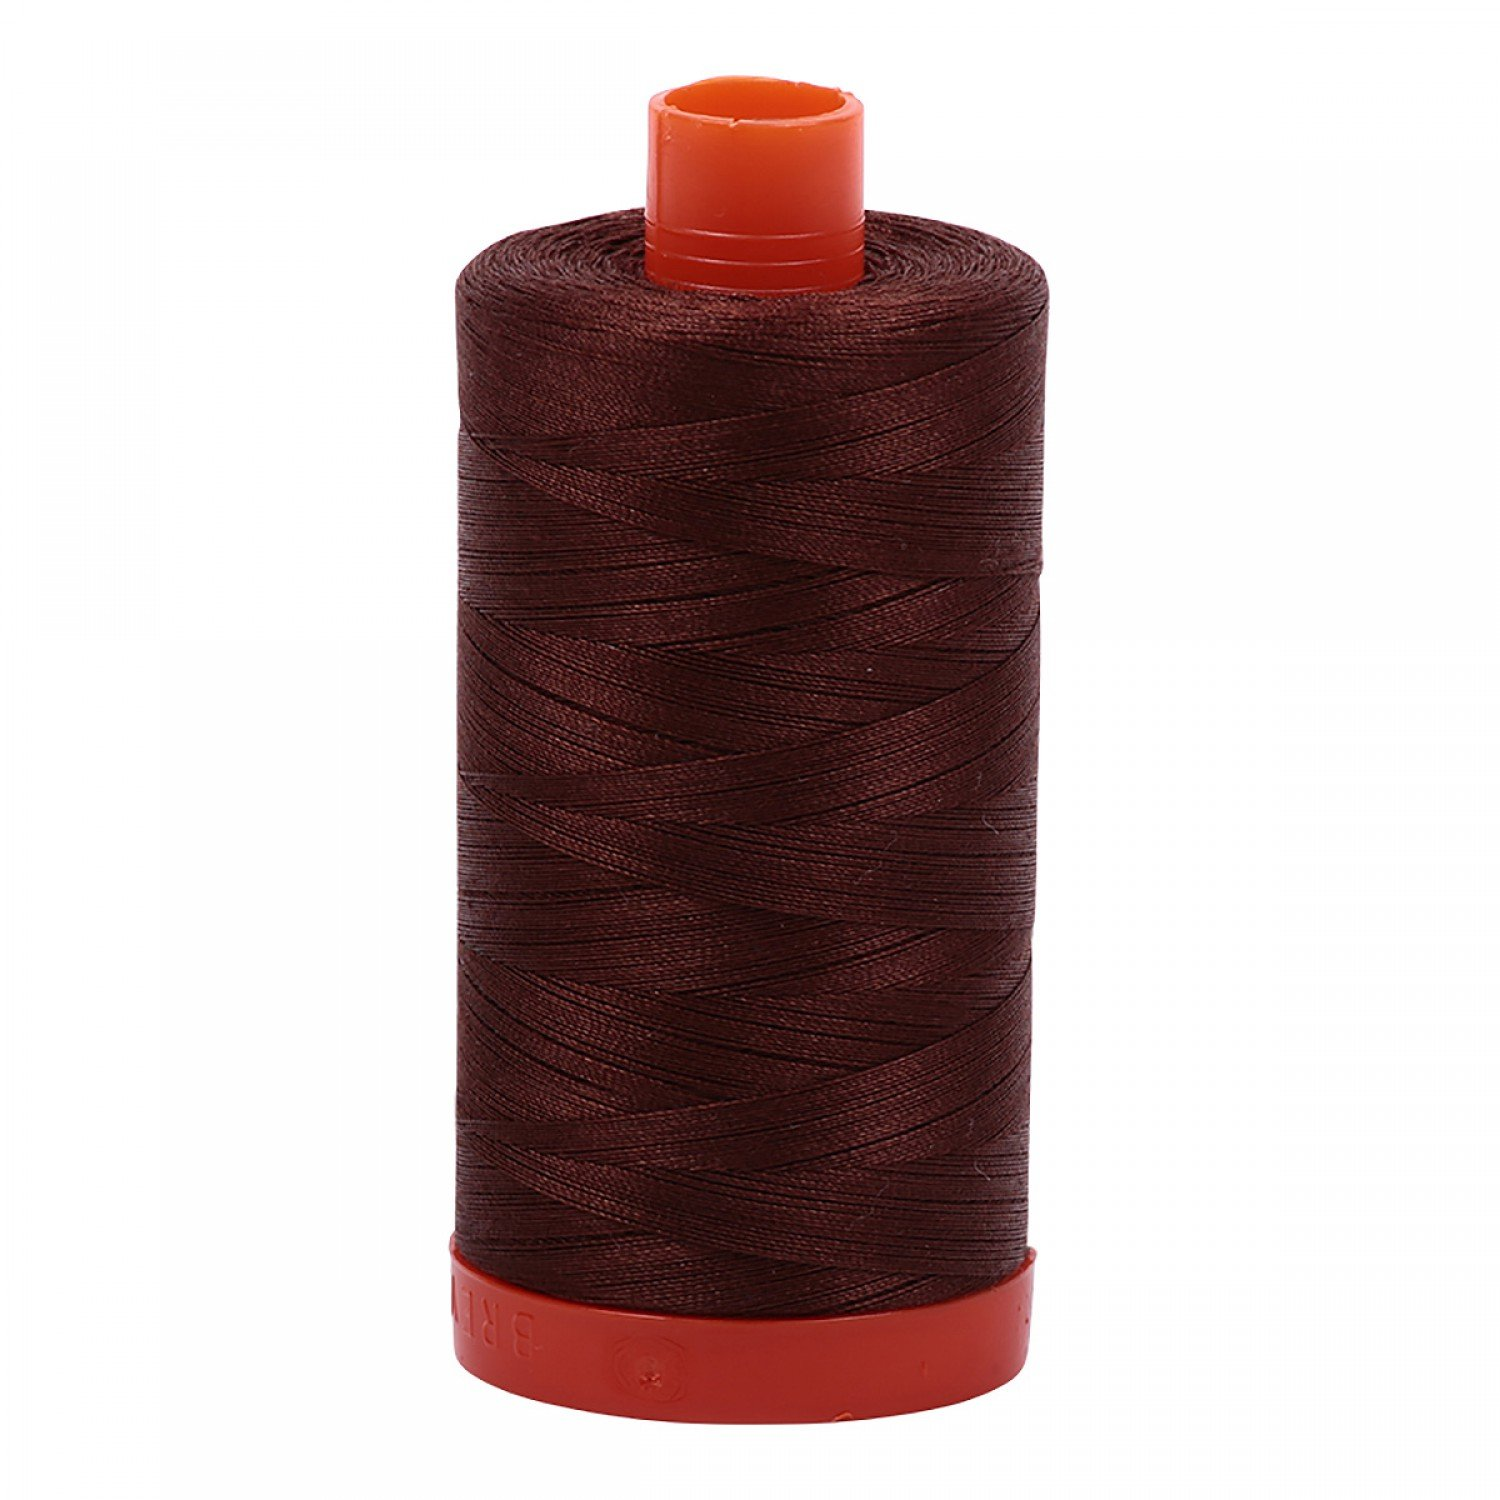 Aurifil Cotton 50wt 2360 Chocolate